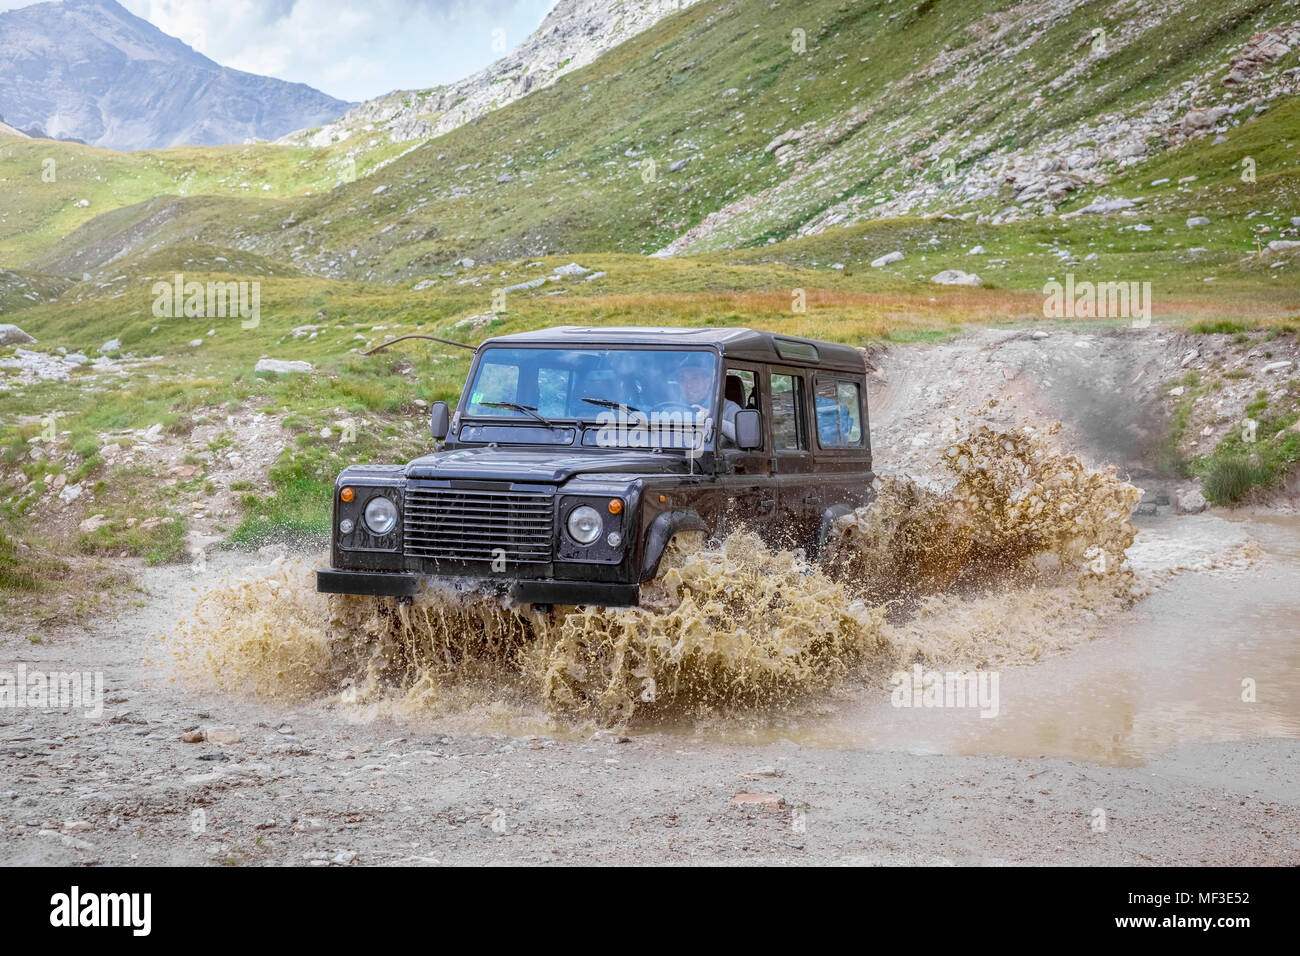 Italy, Piemont, Landrover driving through waterhole - Stock Image